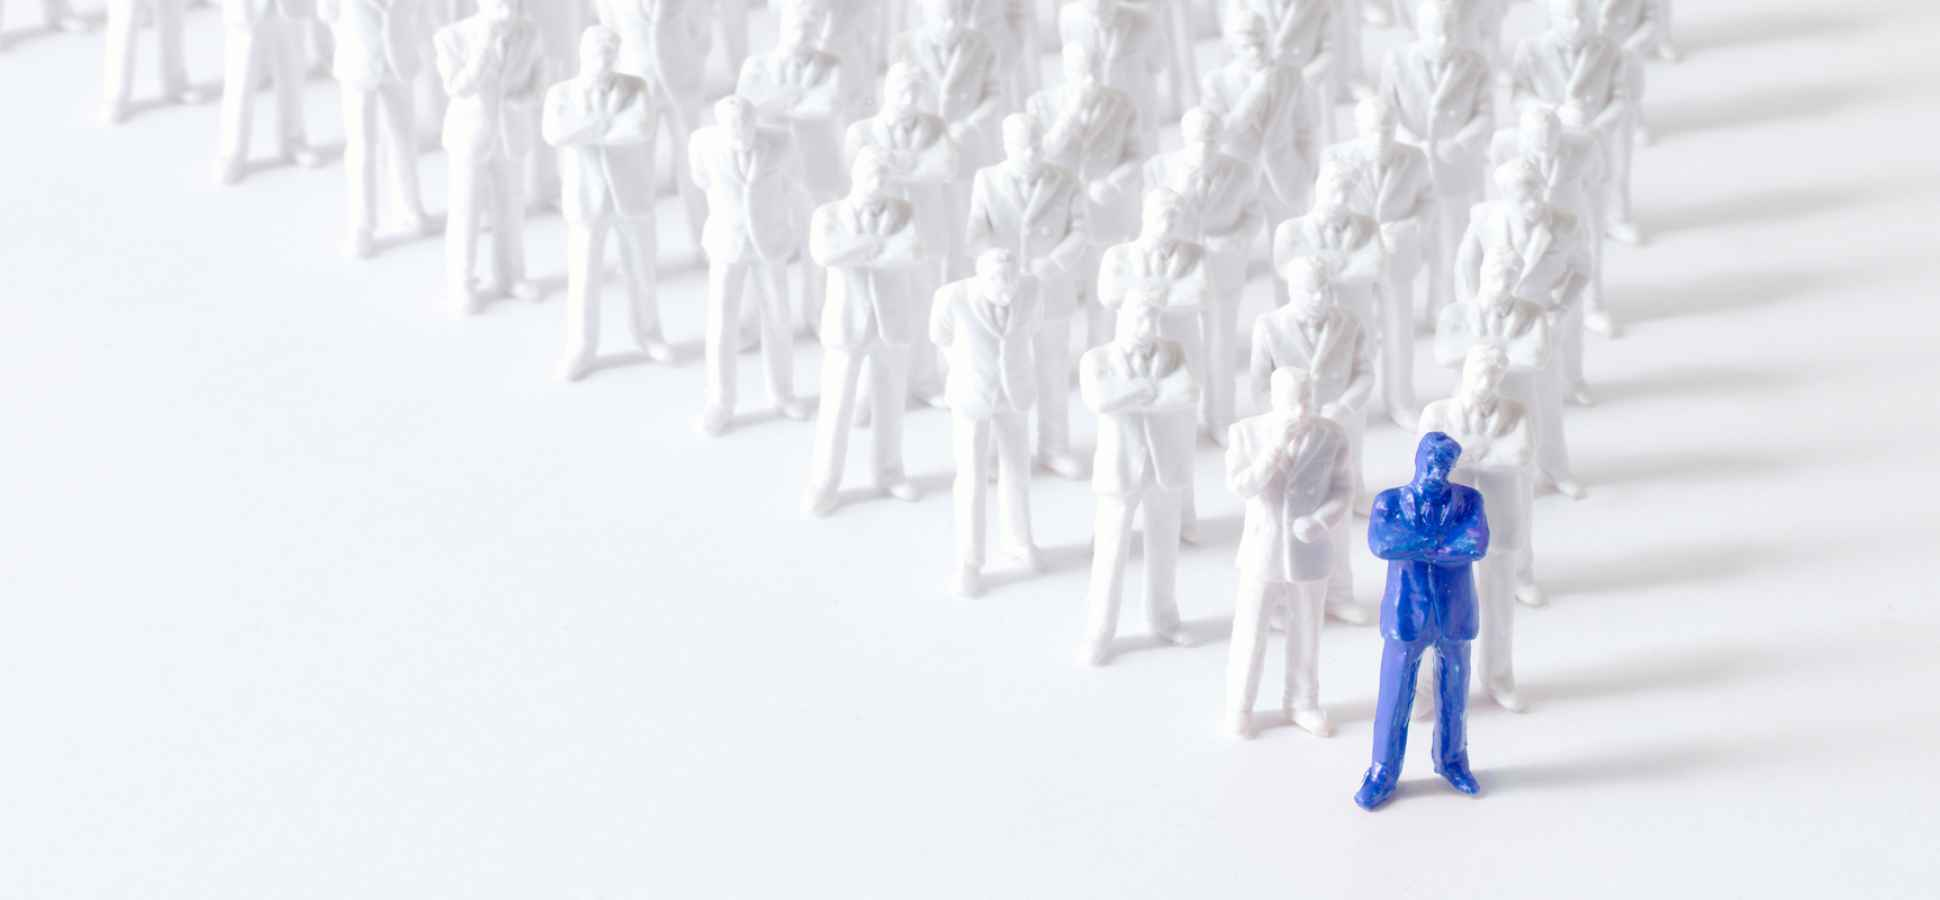 5 Easily-Copied Traits of an Excellent Leader